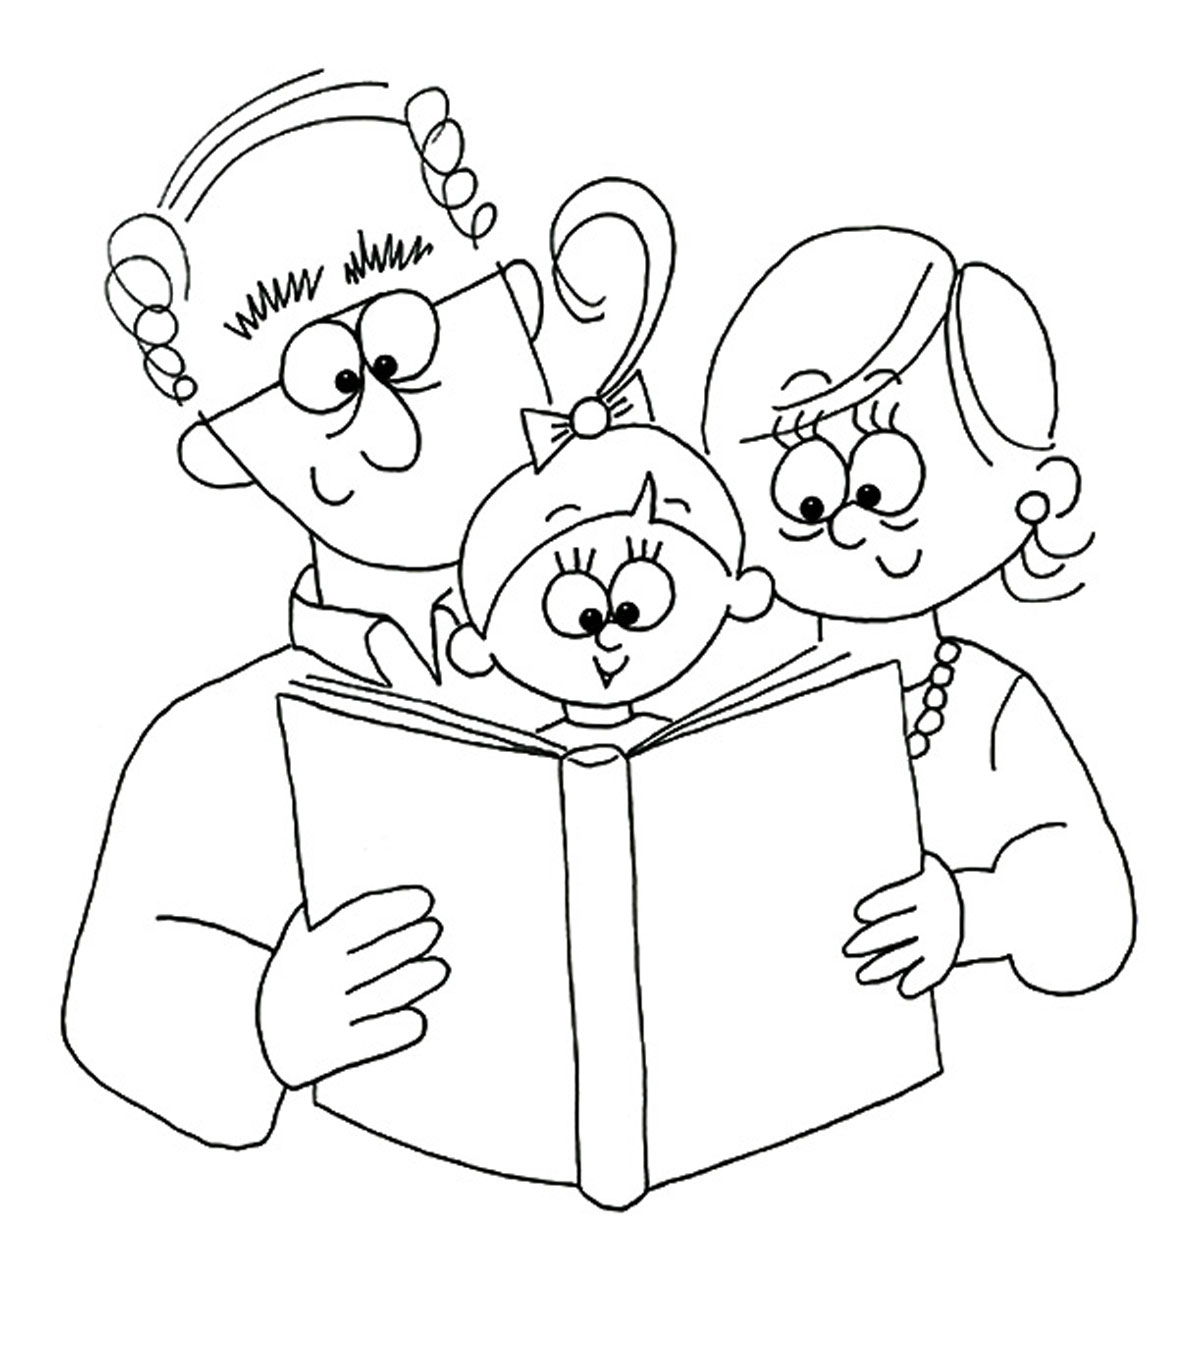 - Top 10 Grandparents Day Coloring Pages For Your Little Ones